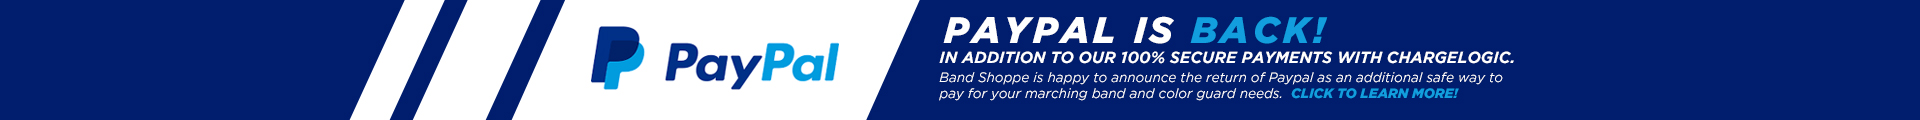 Band Shoppe is proud to welcome PayPal back has part of our 100% secure payment options!